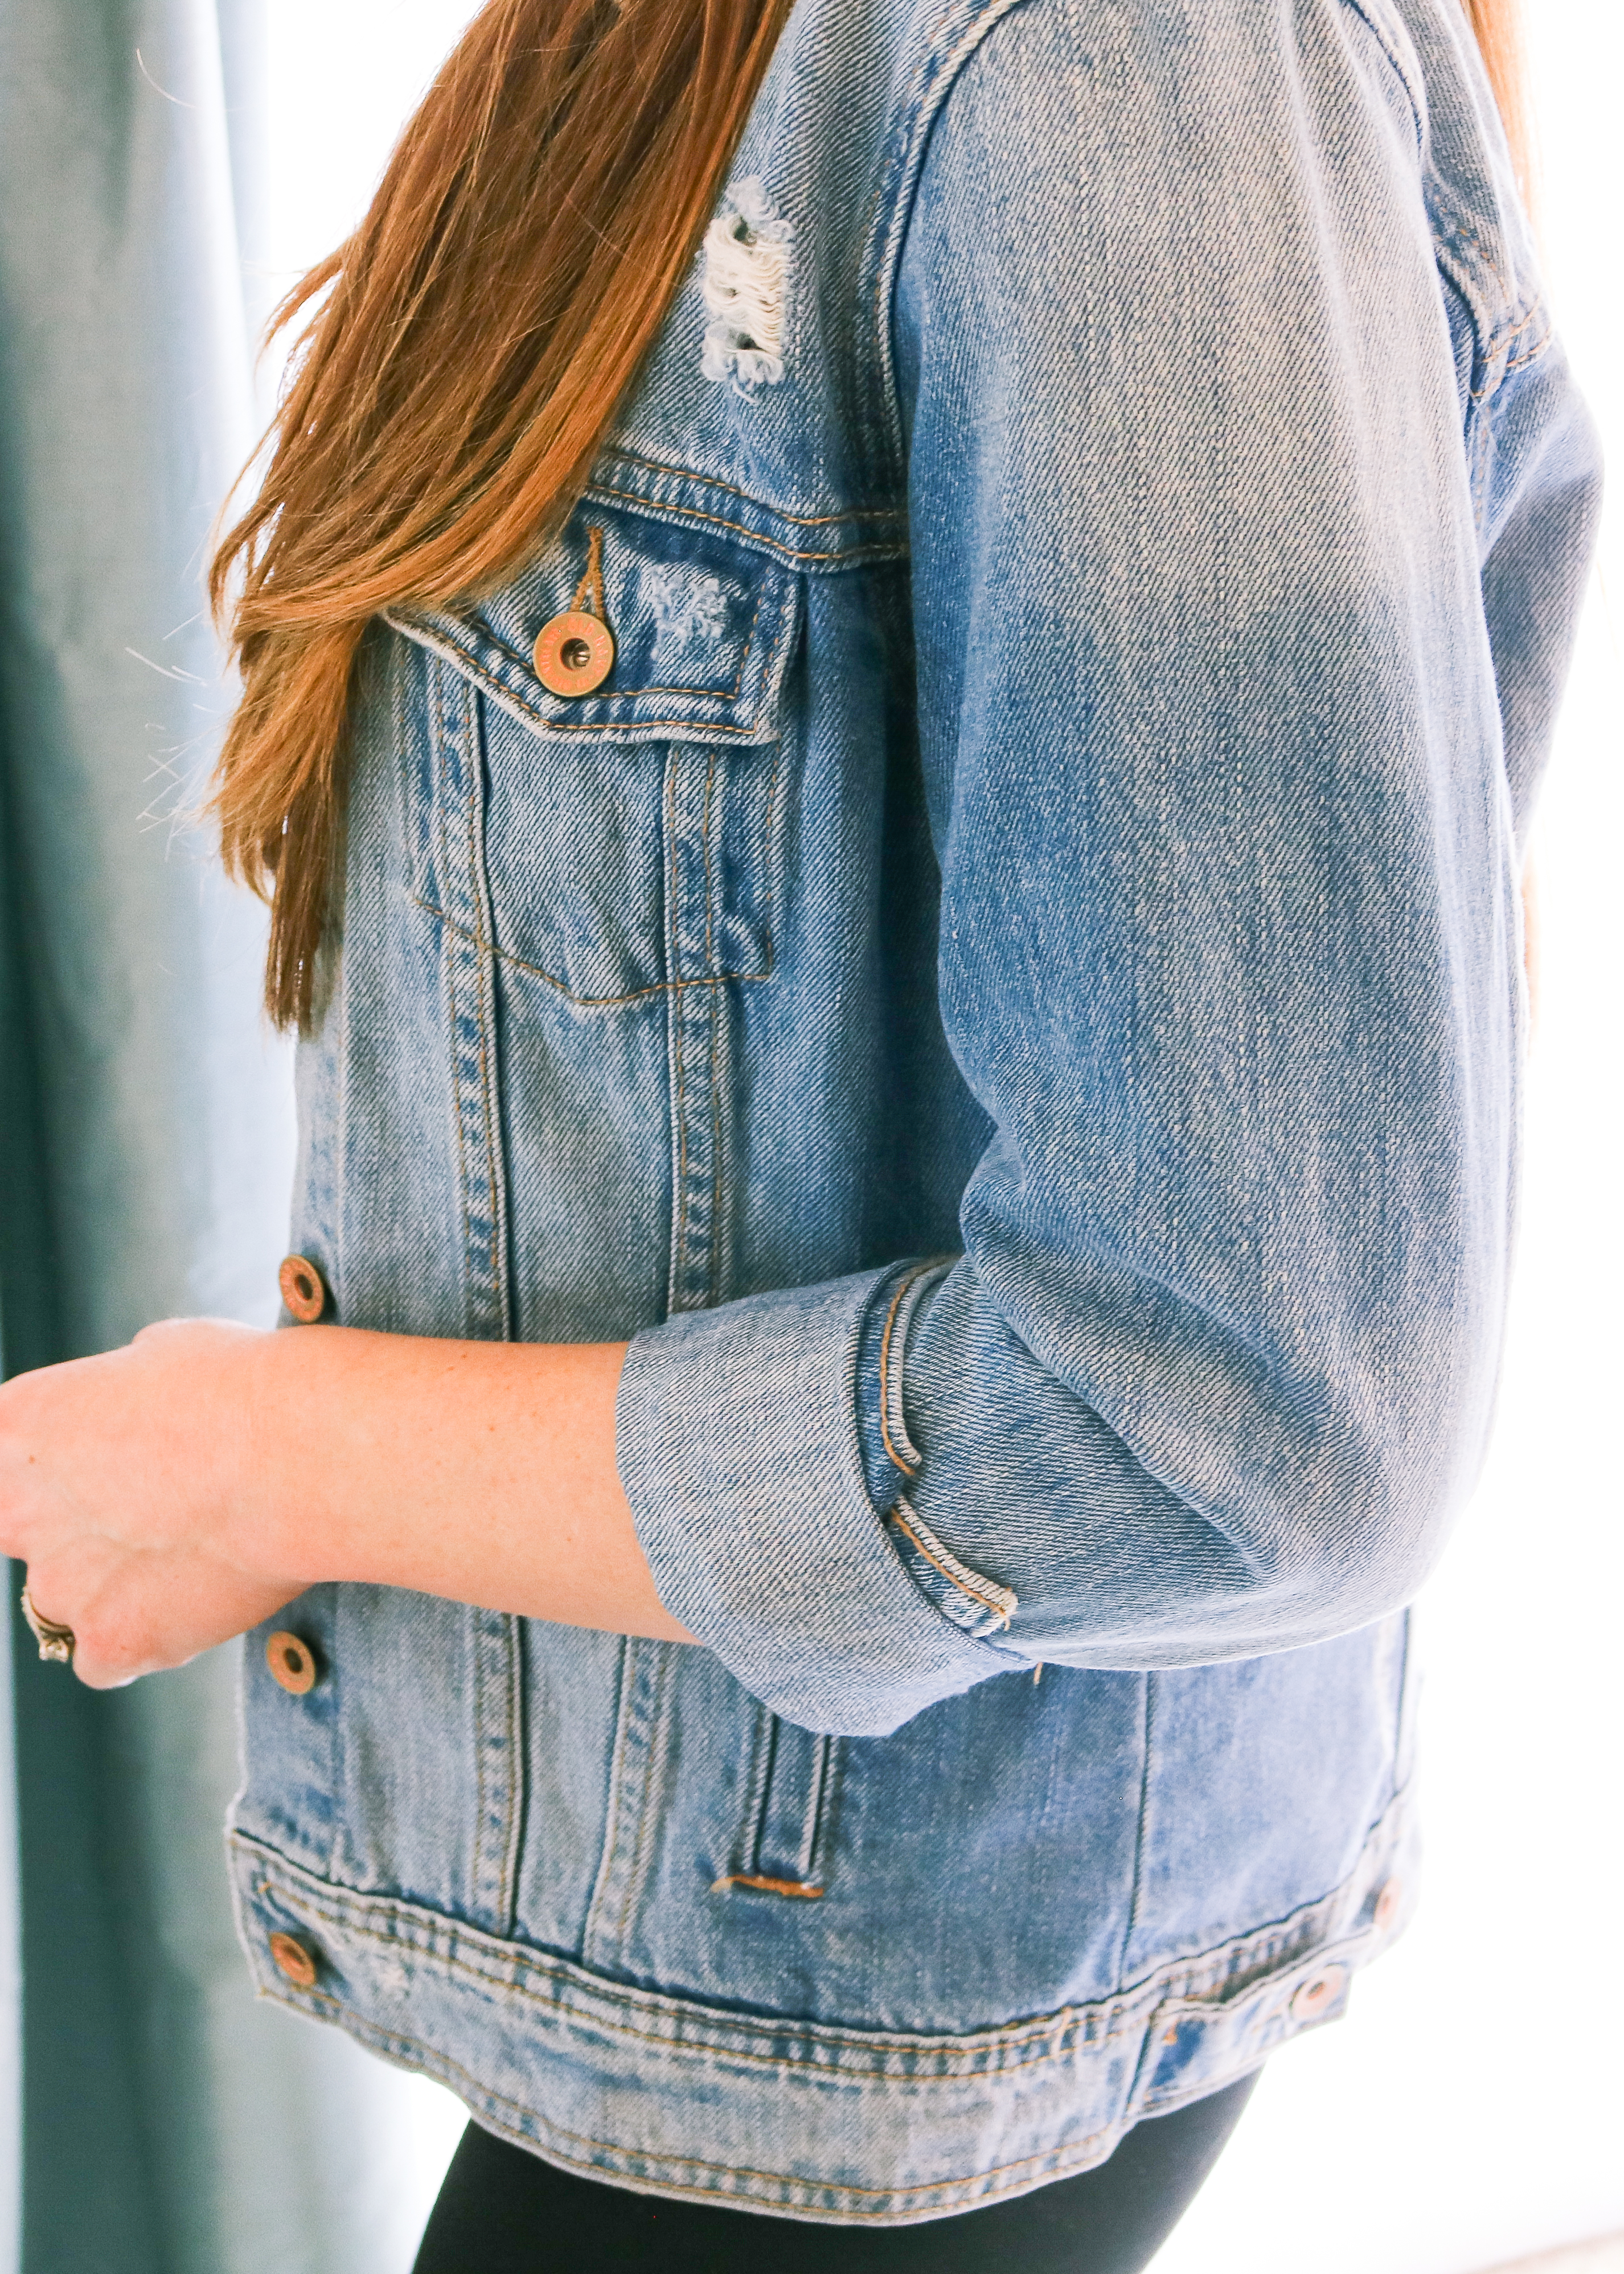 bbd815f36ab The Best Way to Cuff a Denim Jacket – She Knows Chic